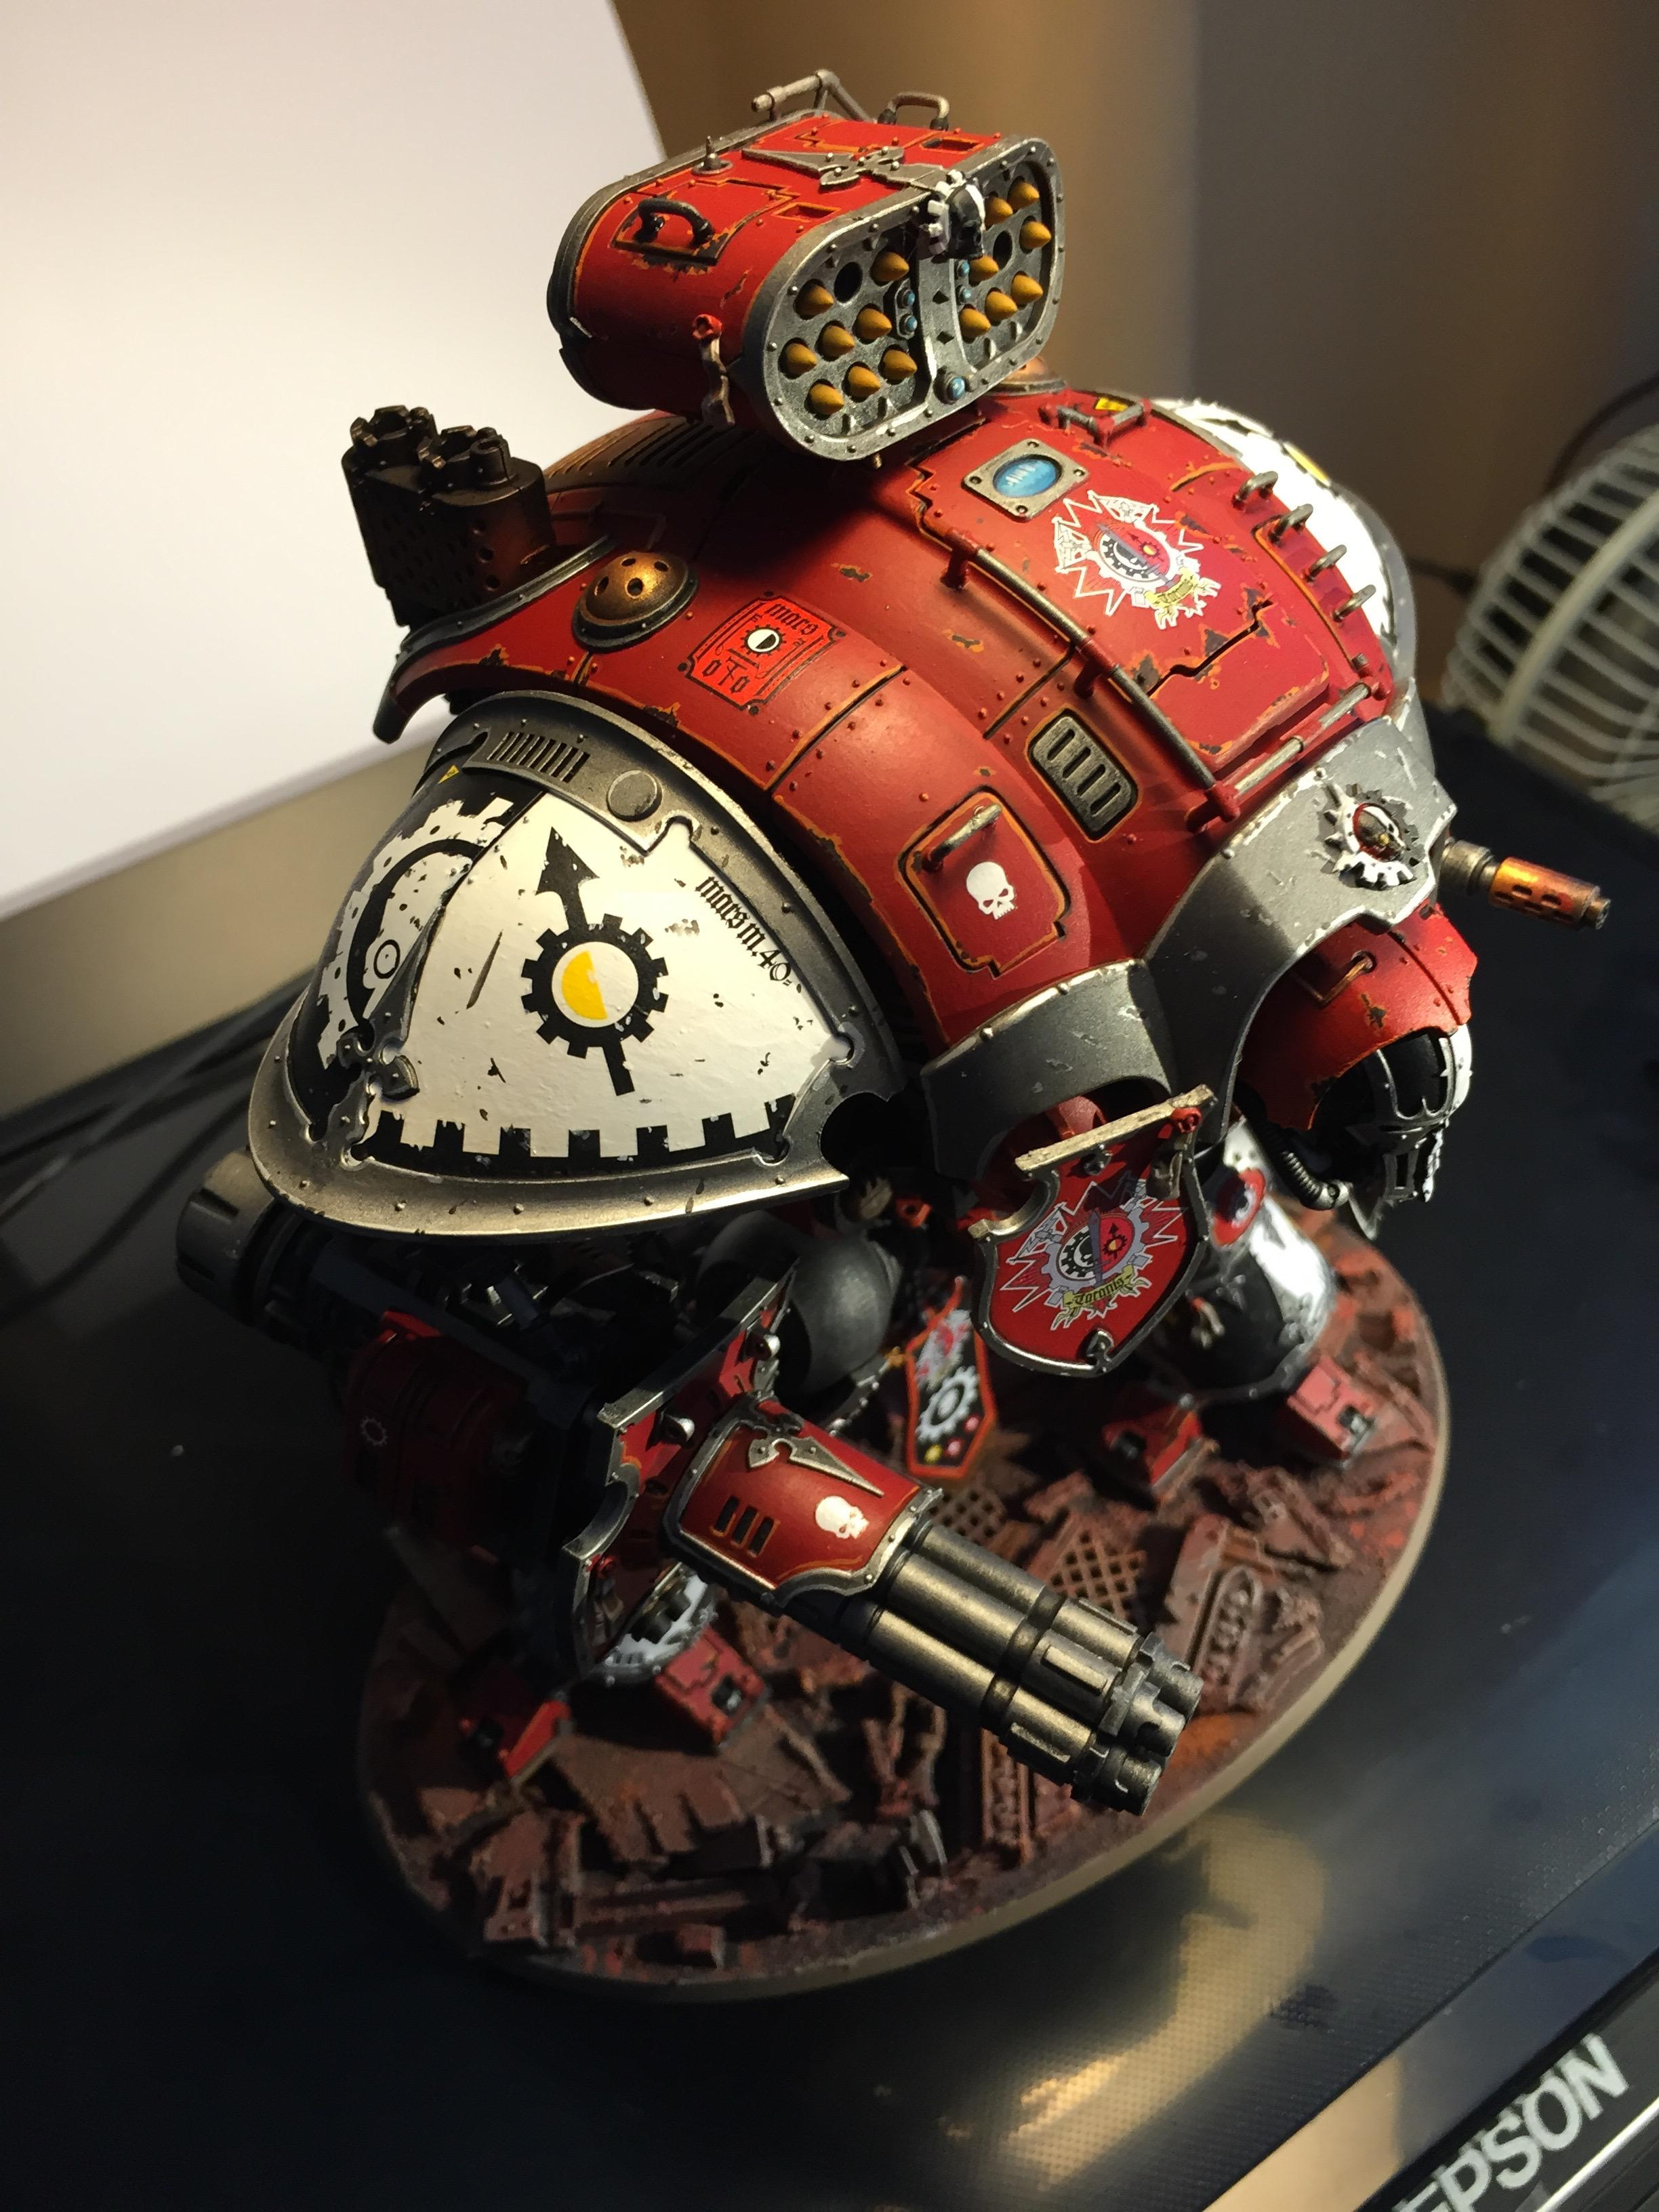 Adeptus Mechanicus, Imperial Knight, Mars, Taranis, Warden